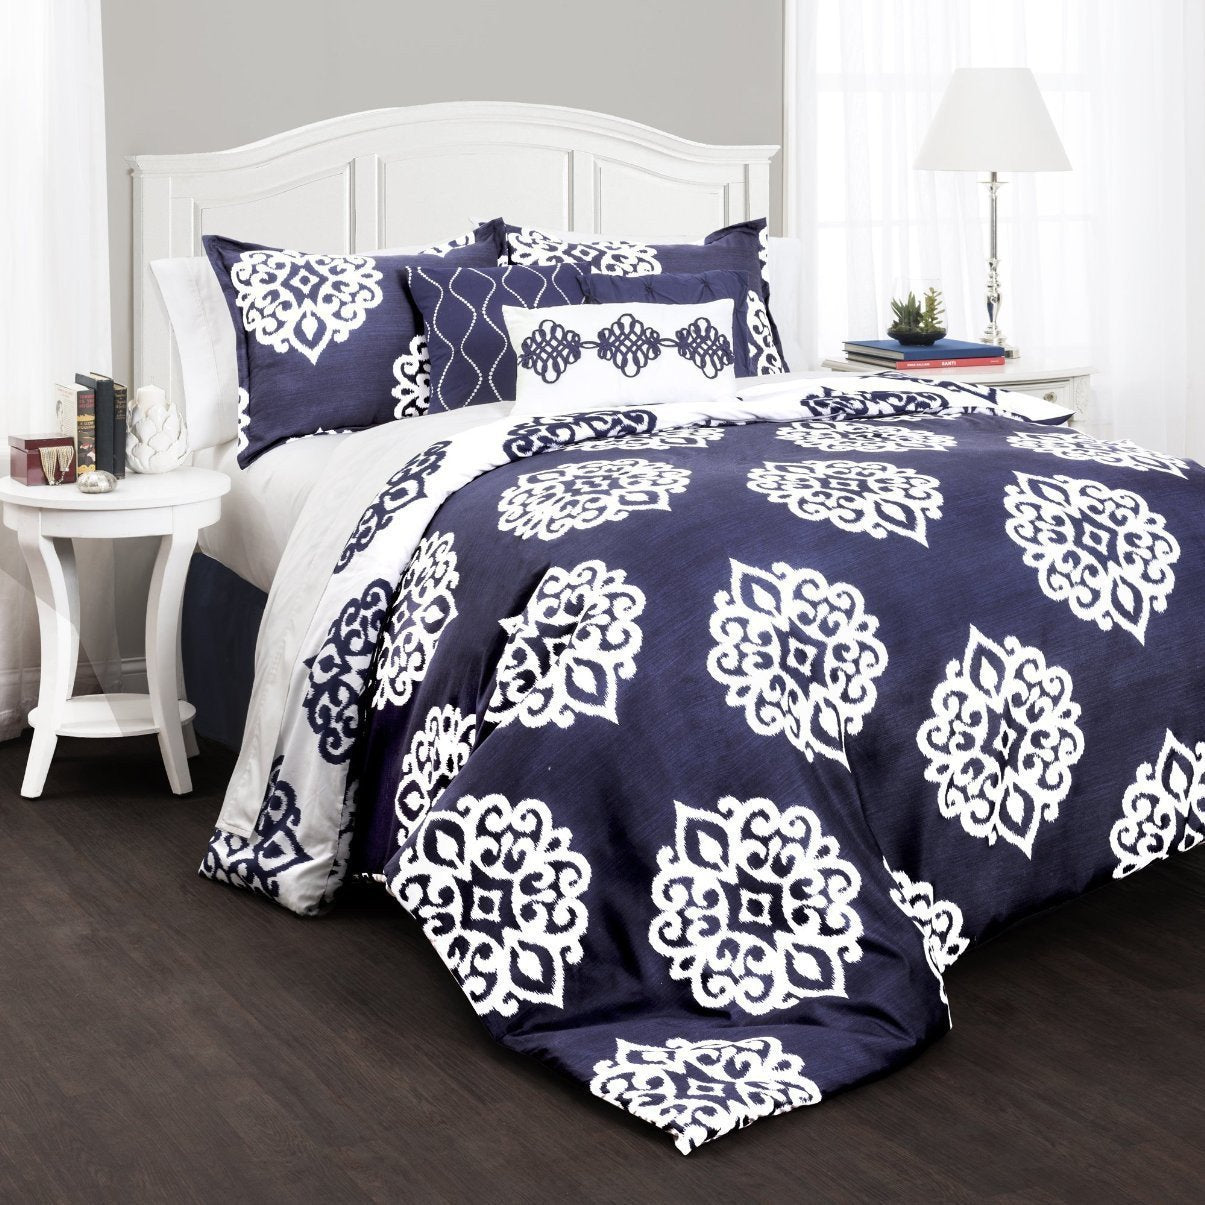 The Matilda Boho Bohemian Moroccan Damask Blue 7 Pc